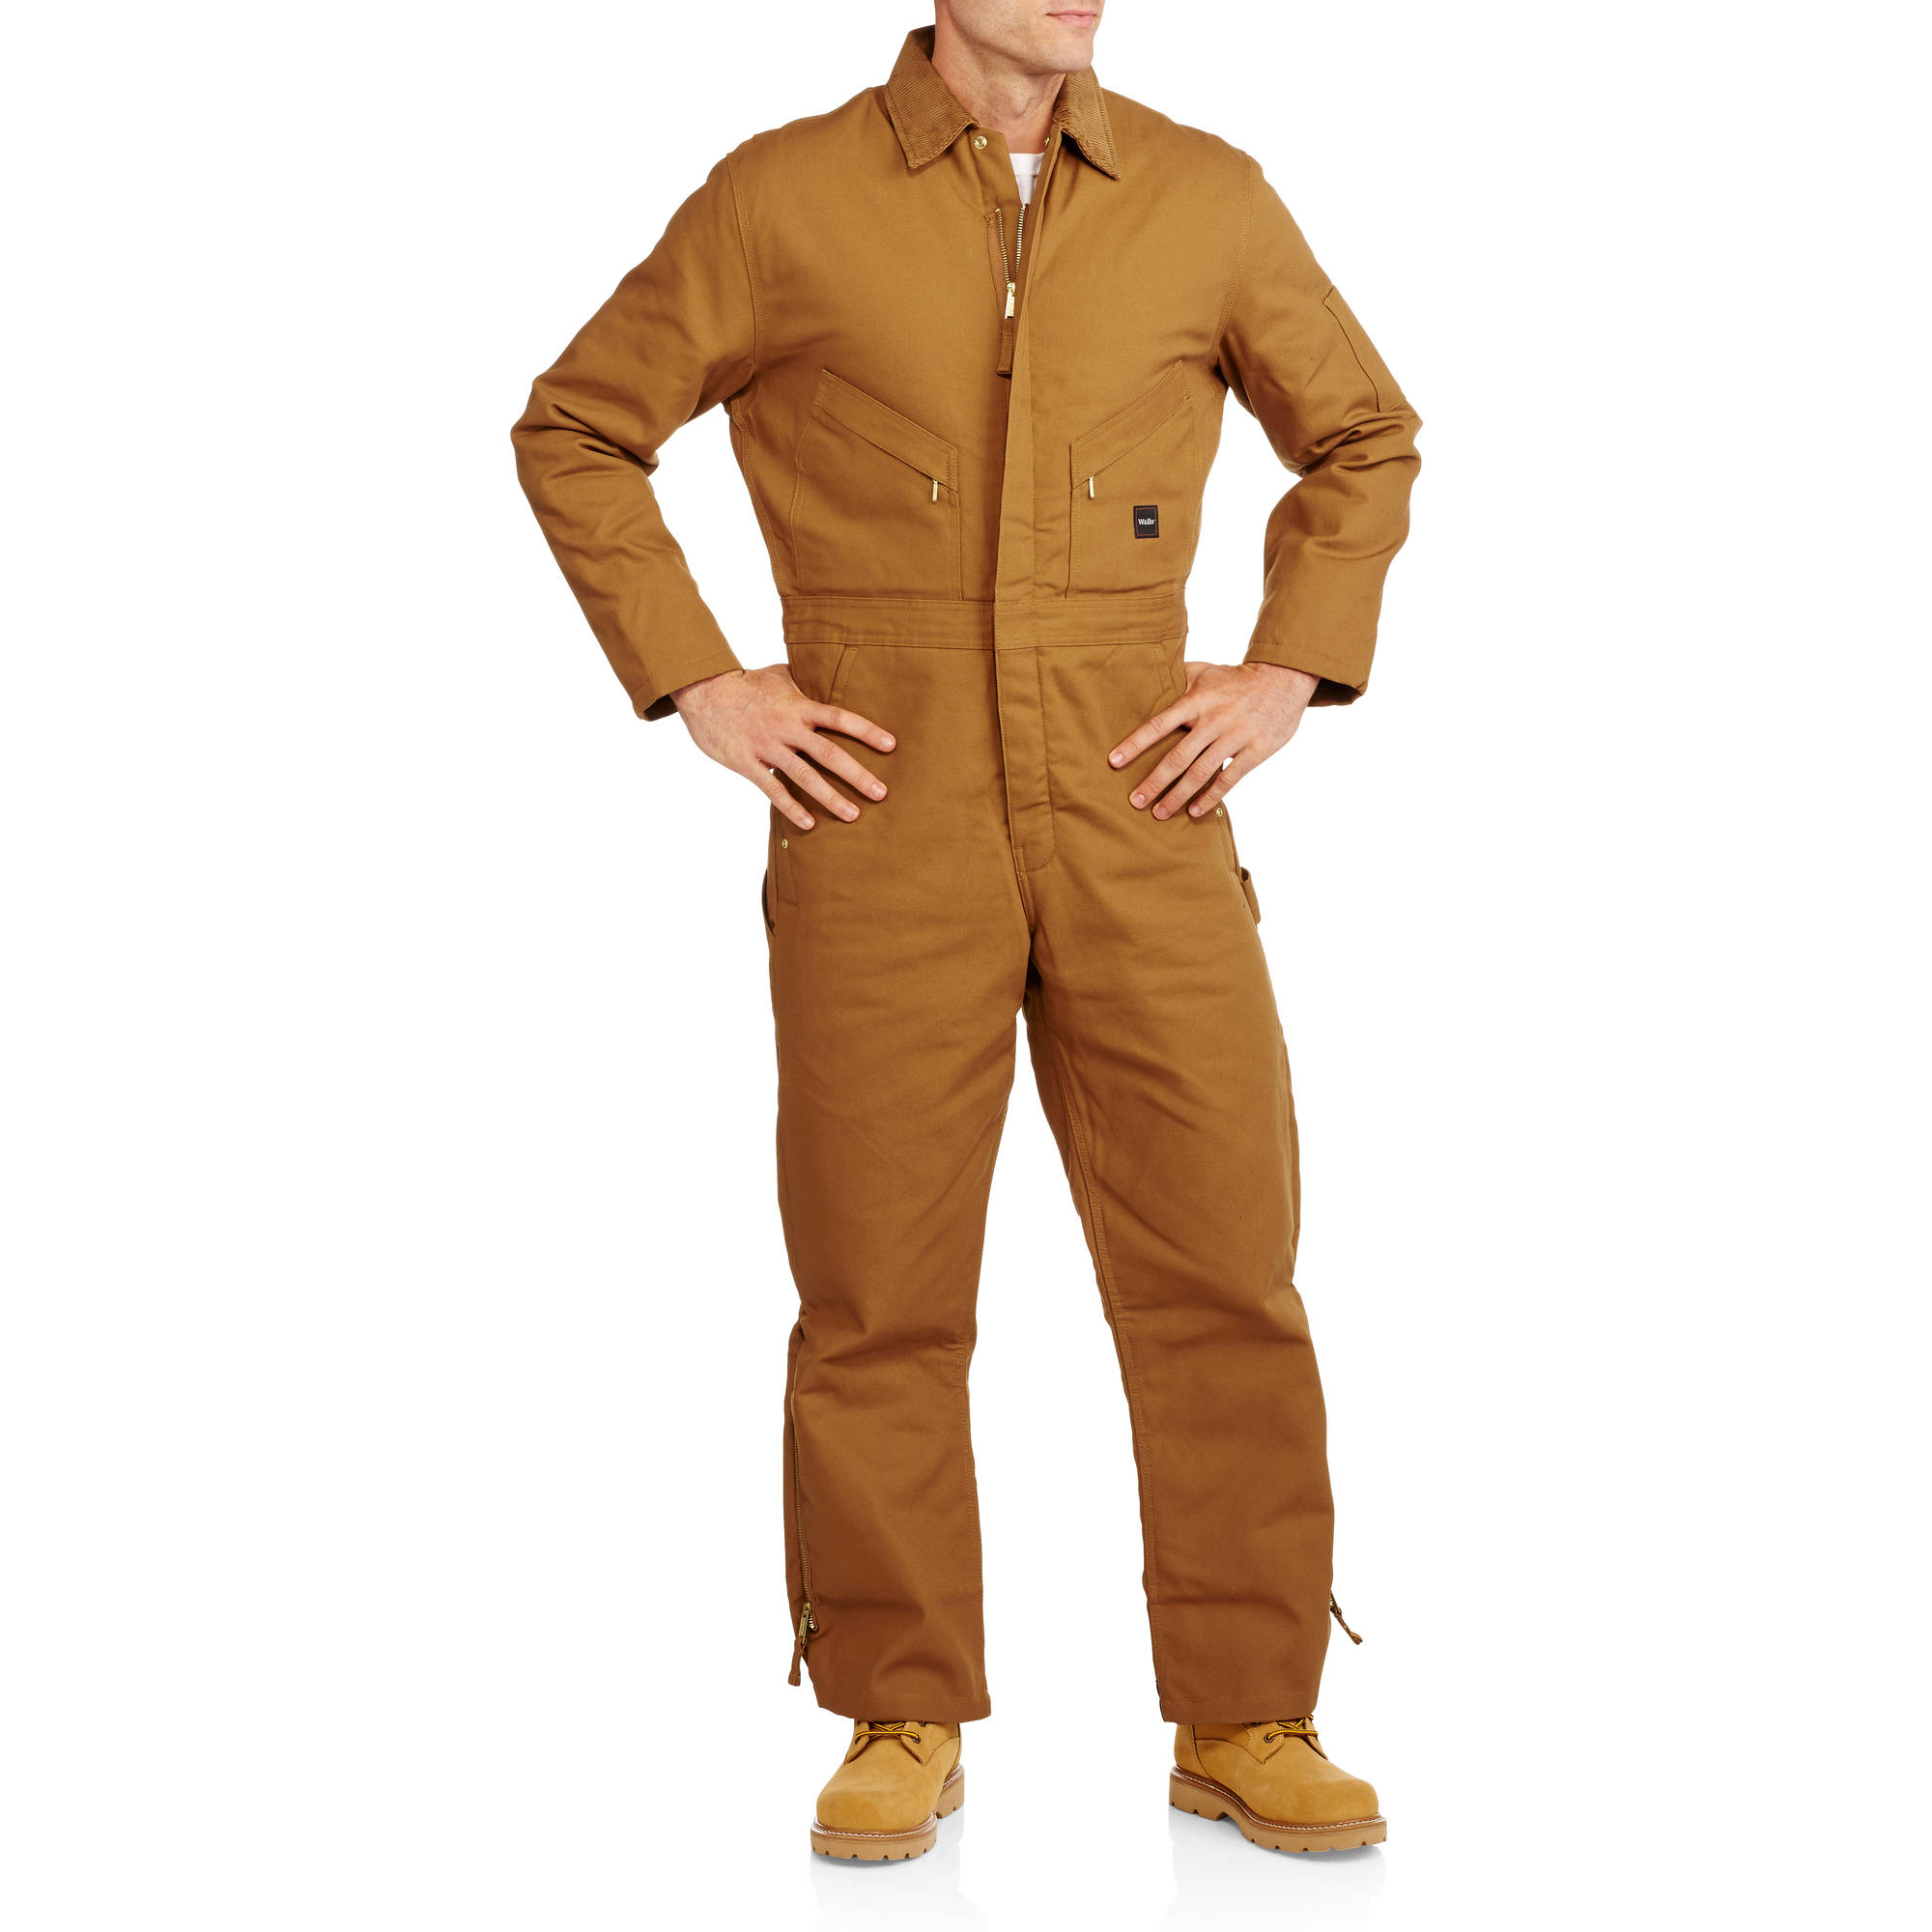 Big Men's Insulated 12 oz 100% Cotton Duck Coverall